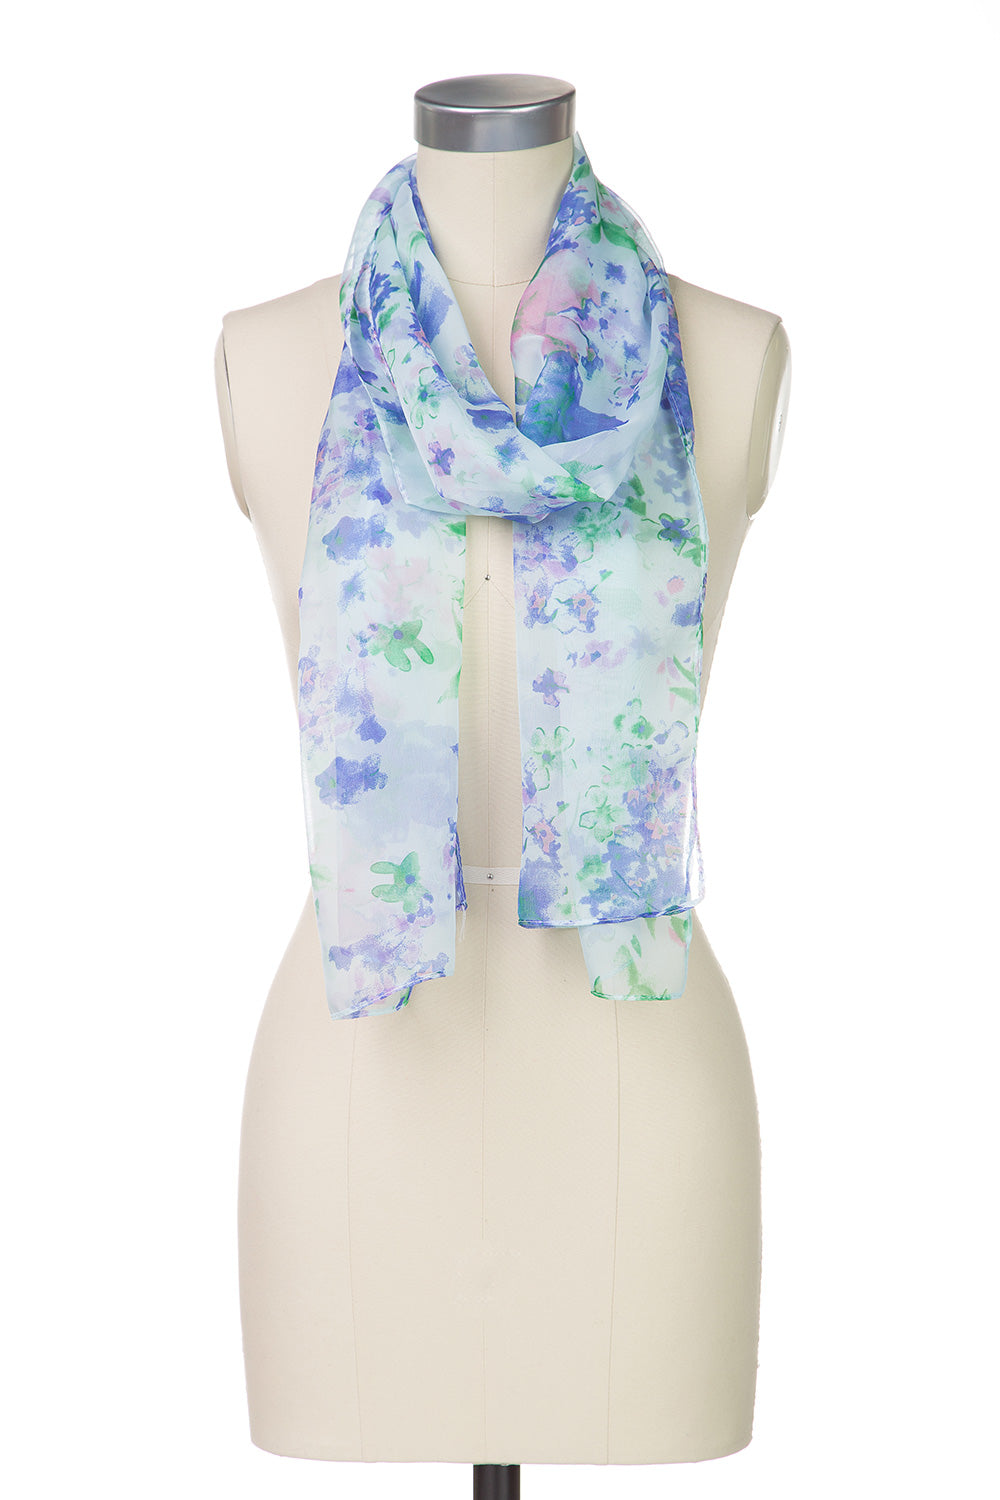 Type 2 Flowery Feelings Scarf in Blue